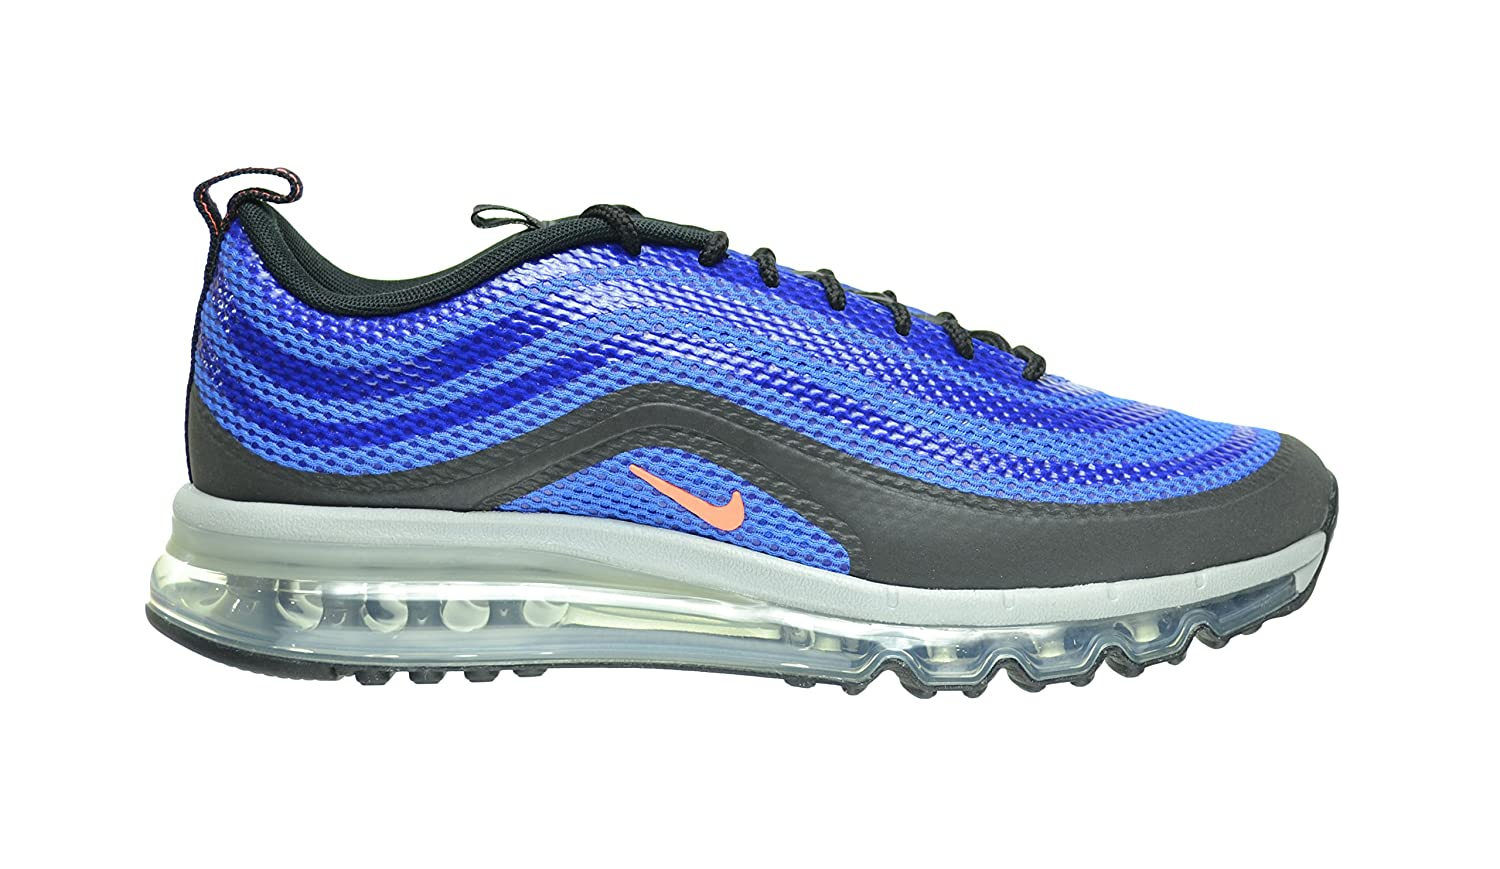 premium selection cf830 a22ab Amazon.com   Nike Air Max 97-2013 Hyp Men s Shoes Hyper Cobalt Bright  Mango-Black 631753-402 (11.5 D(M) US)   Athletic